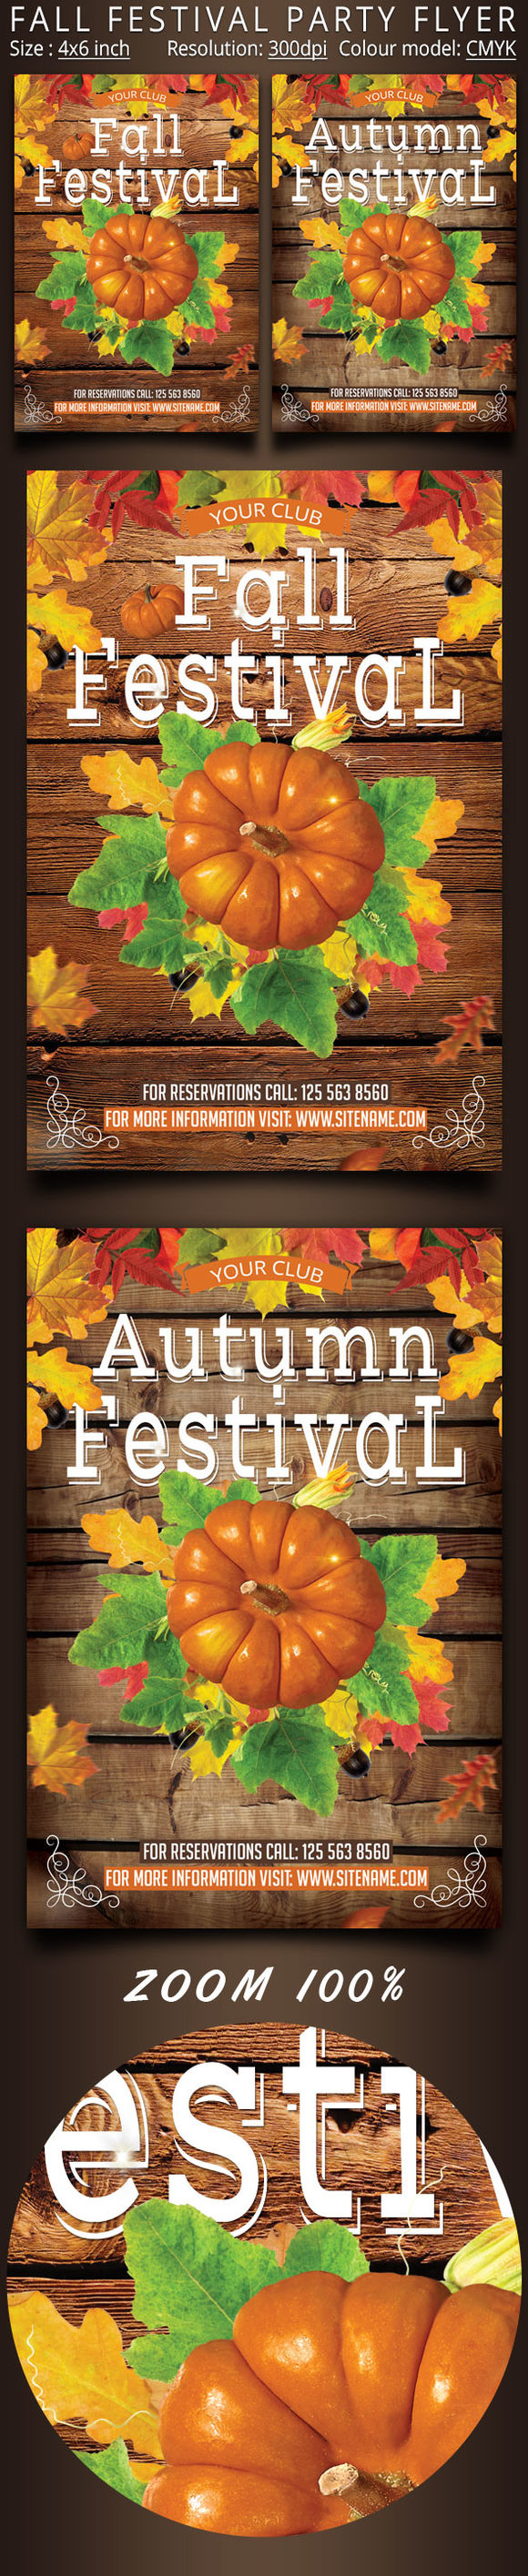 Fall Festival Party Flyer by Oloreon is available from CreativeMarket for $6.